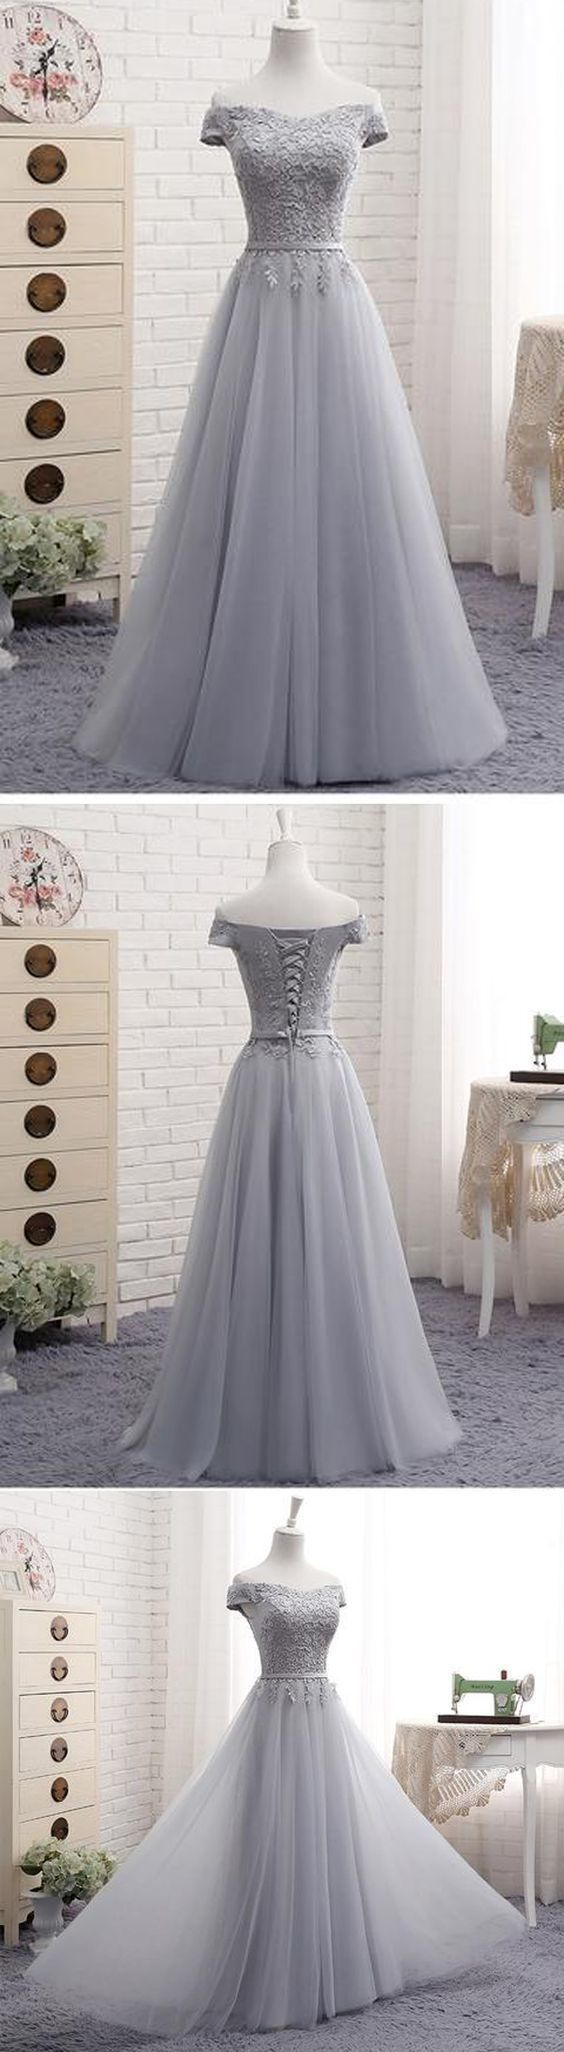 A-Line Gray Off the Shoulder Tulle Lace-up Sweetheart Prom Dress